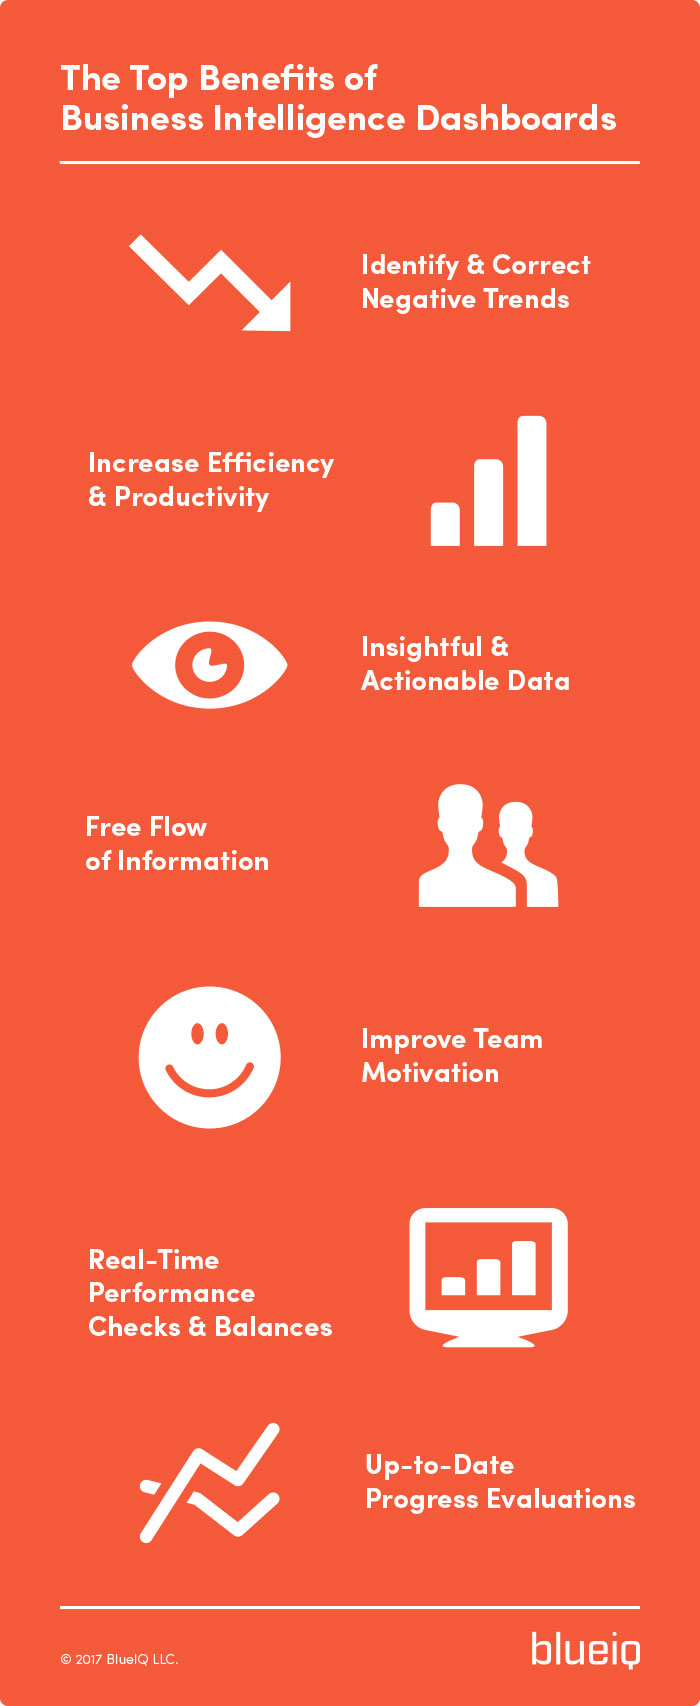 Top Benefits of Business Intelligence